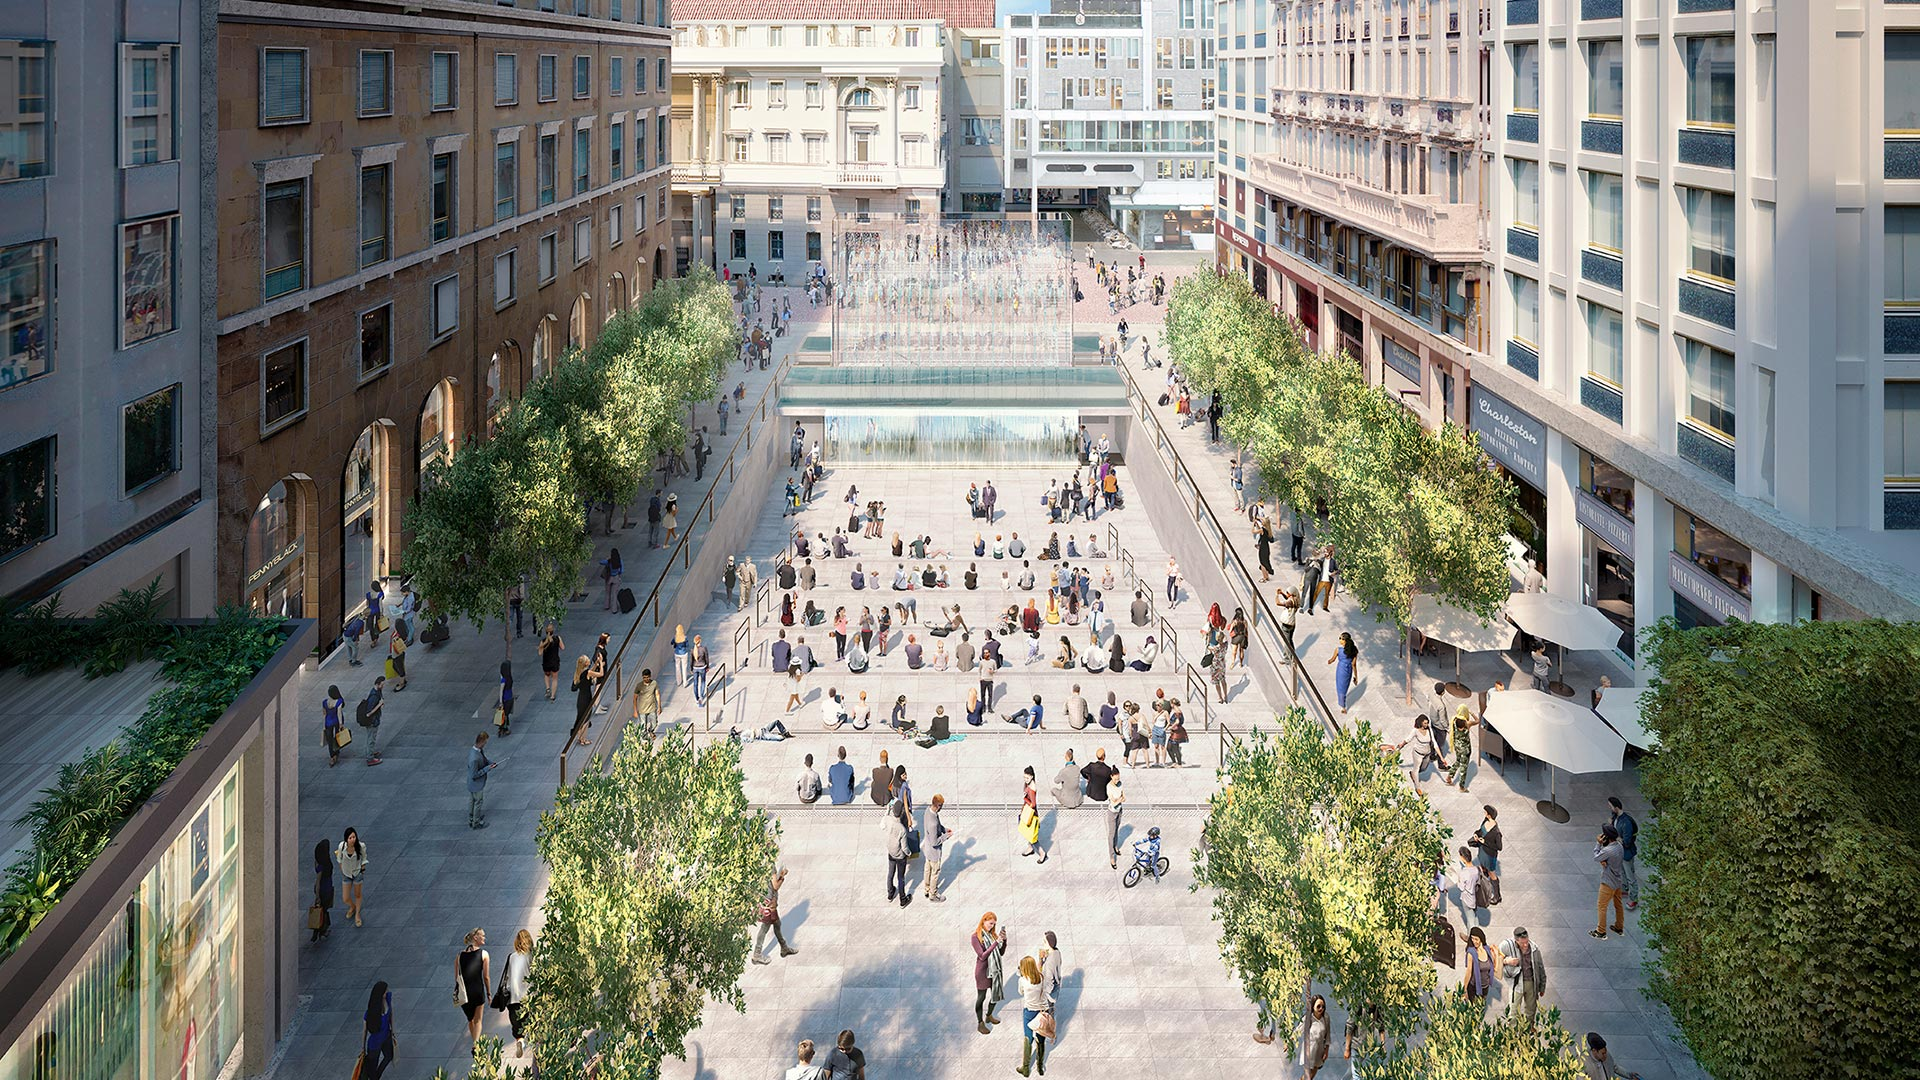 Ein Blick auf die umgestaltete Piazza Liberty in Mailand — Illustration: Apple · Foster + Partners